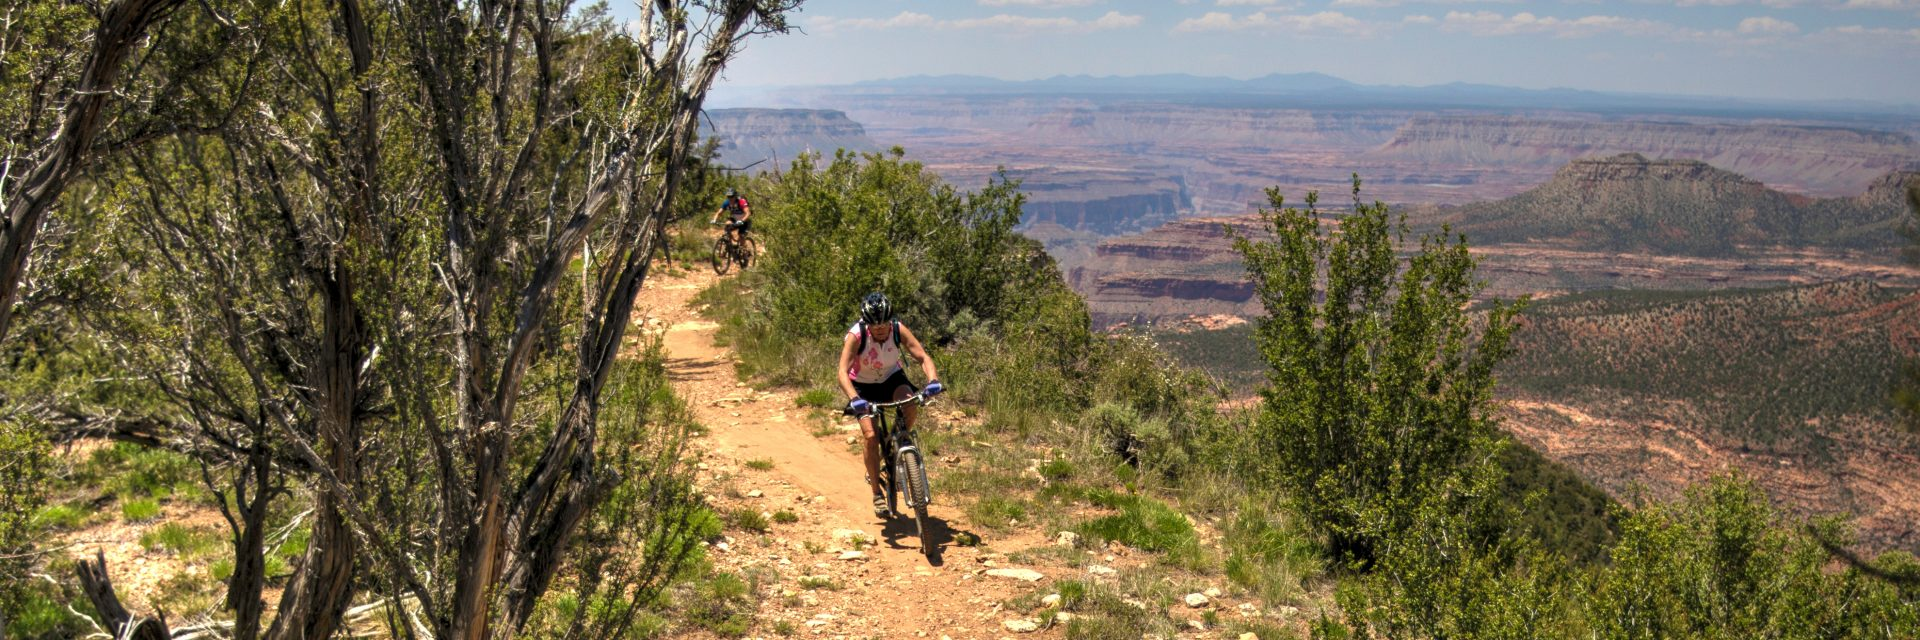 Riders departing Fence Point on the Rainbow Rim Trail during a guided mountain bike tour of the North Rim of the Grand Canyon